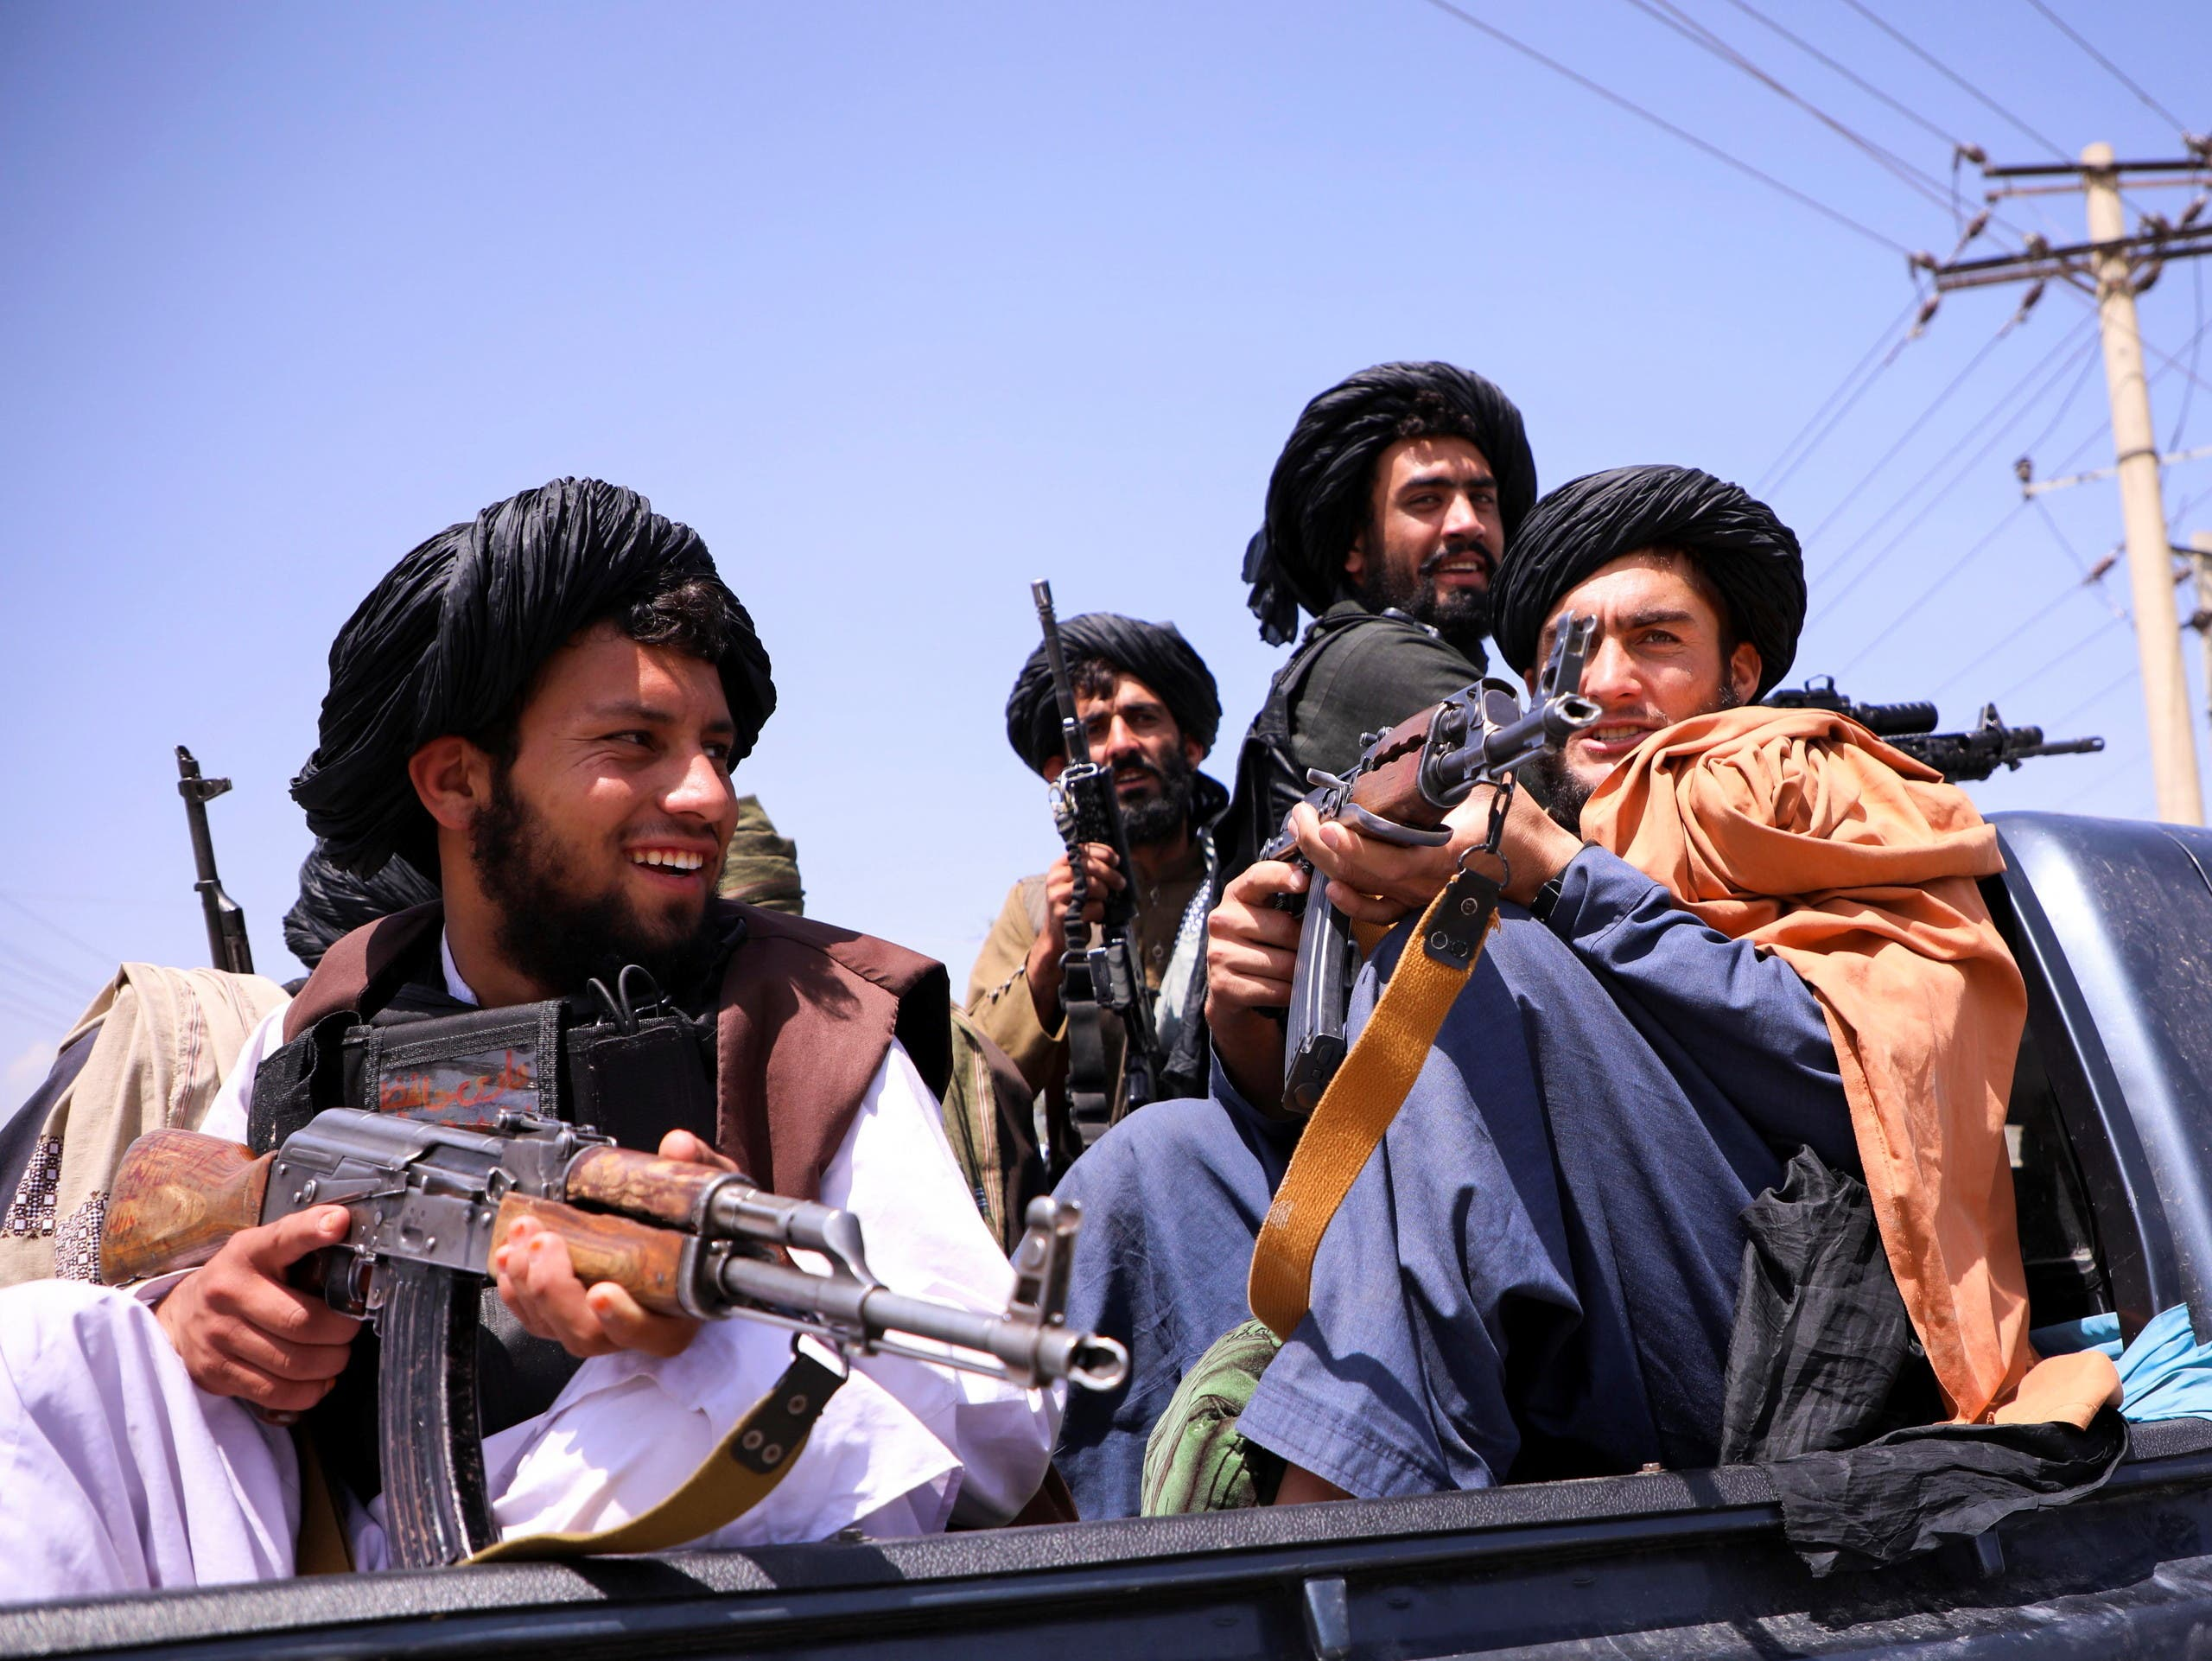 Taliban forces patrol in front of Hamid Karzai International Airport in Kabul, Afghanistan, September 2, 2021. (Reuters)